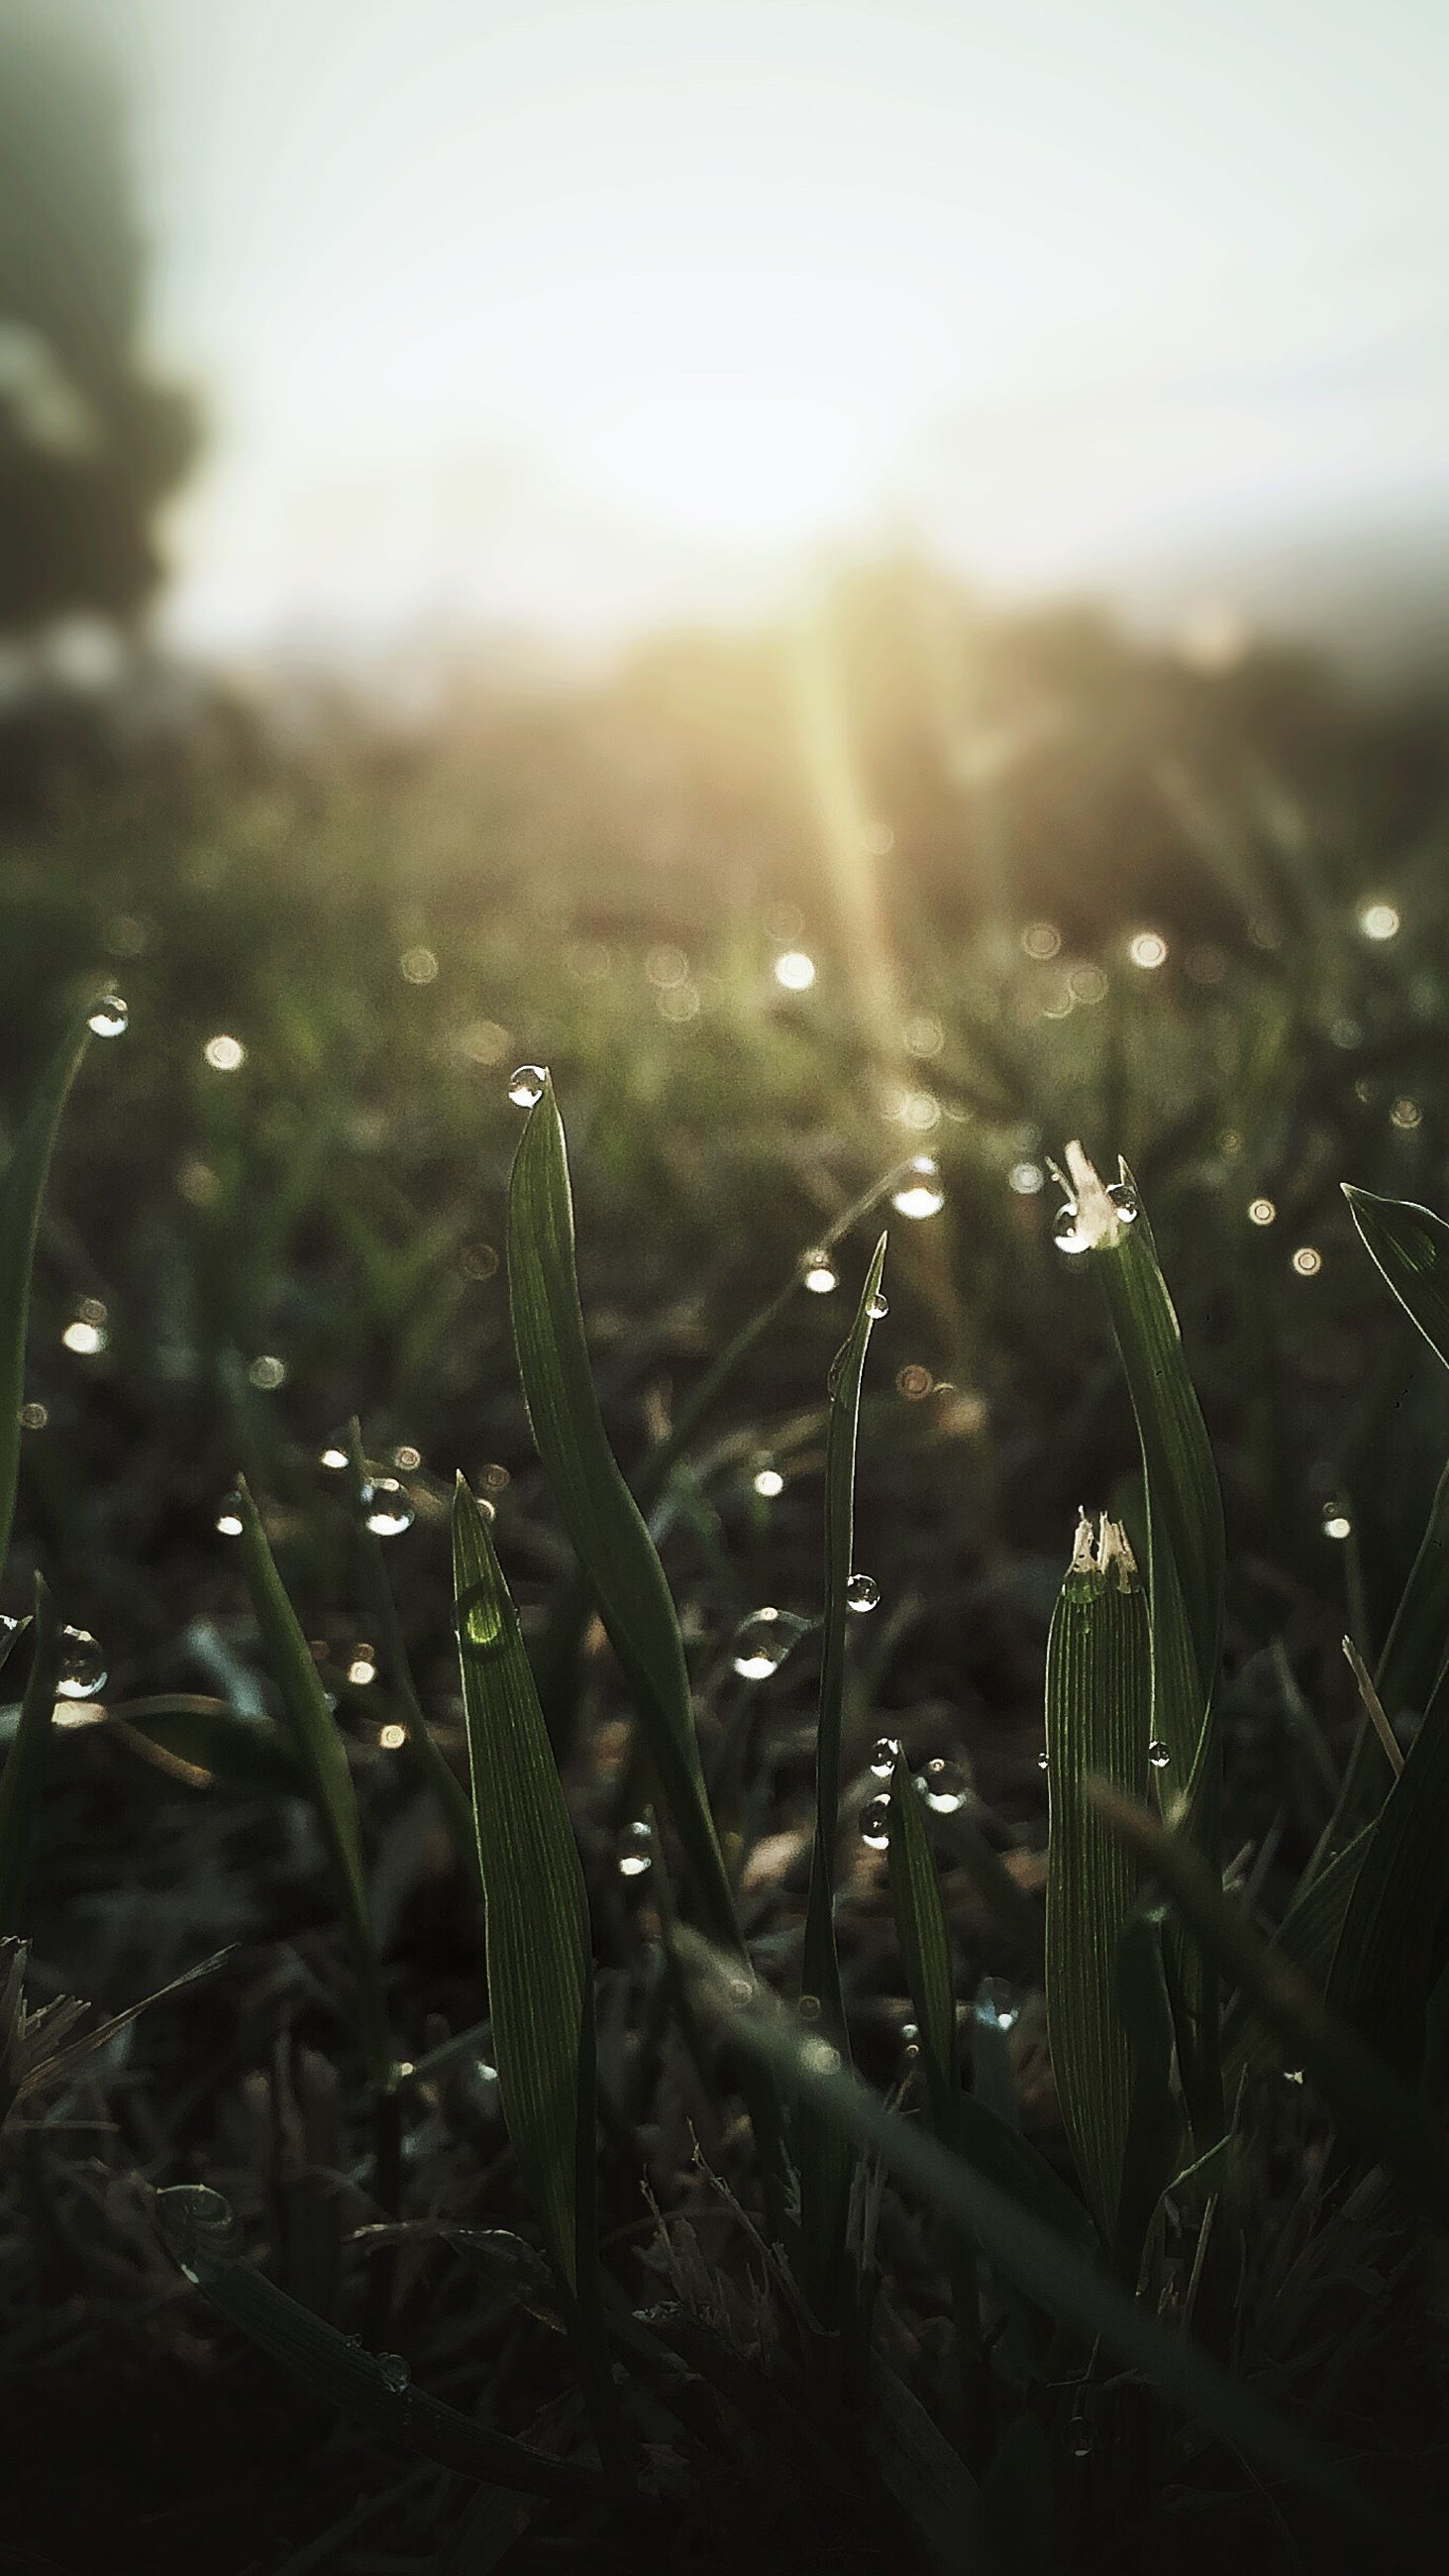 growth, sunlight, sunbeam, field, plant, grass, close-up, focus on foreground, beauty in nature, nature, lens flare, landscape, rural scene, tranquil scene, tranquility, sun, bright, agriculture, dew, crop, scenics, farm, green color, blade of grass, sky, freshness, wheat, day, outdoors, grassy, dawn, non-urban scene